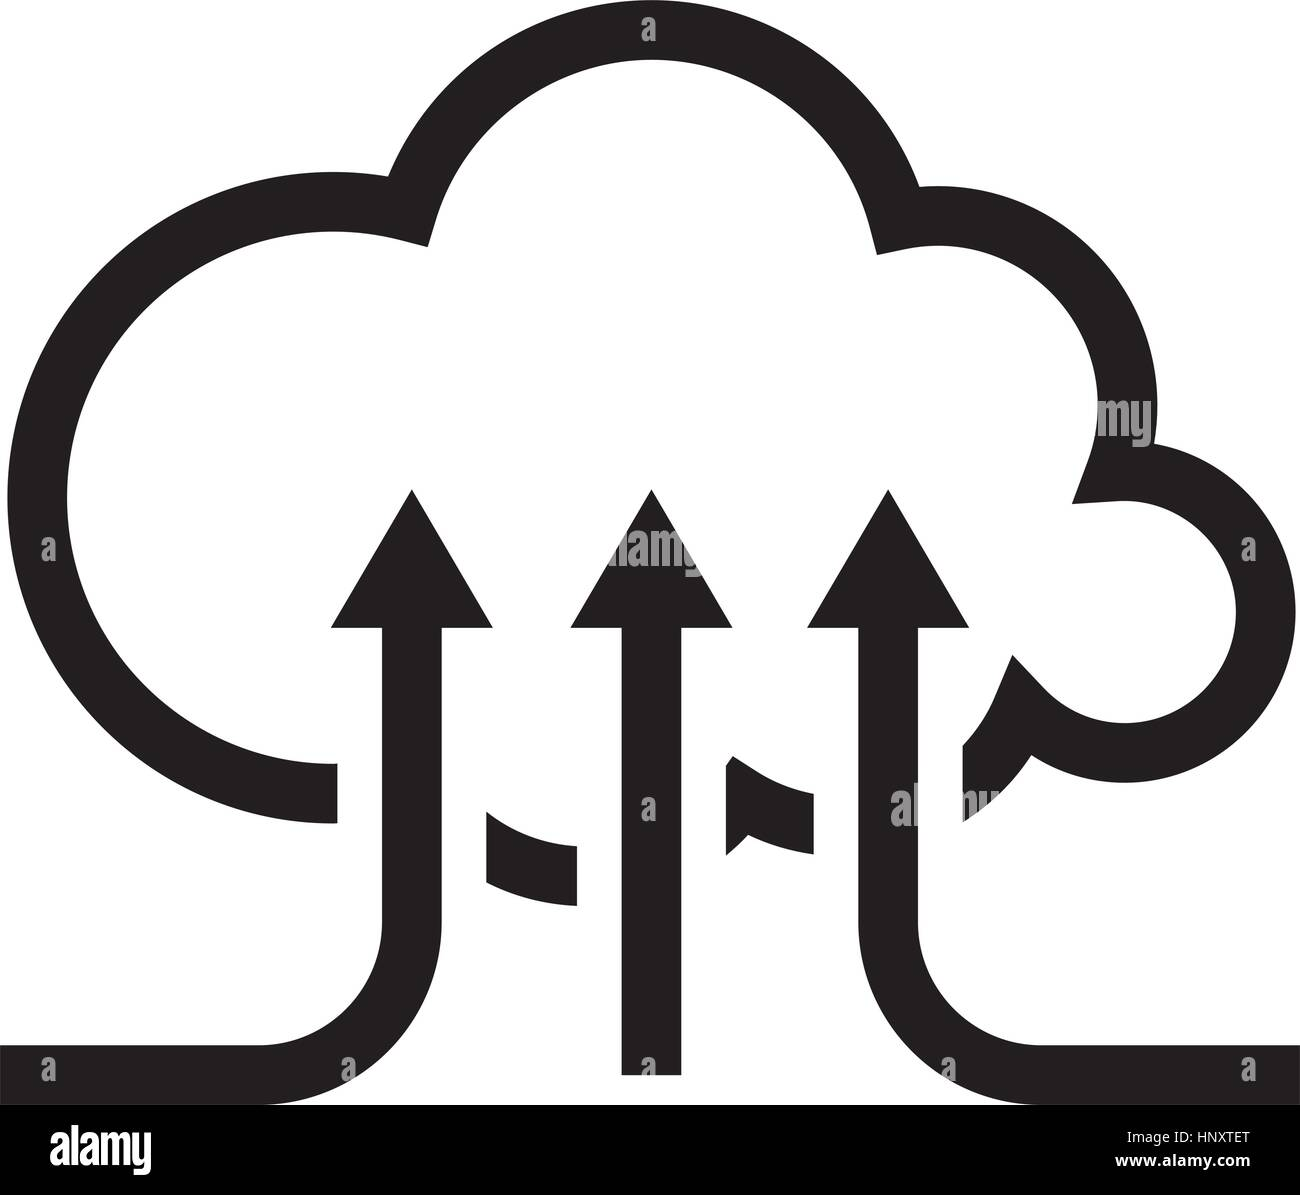 Online Cloud Services. Flat Design Icon. Stock Vector